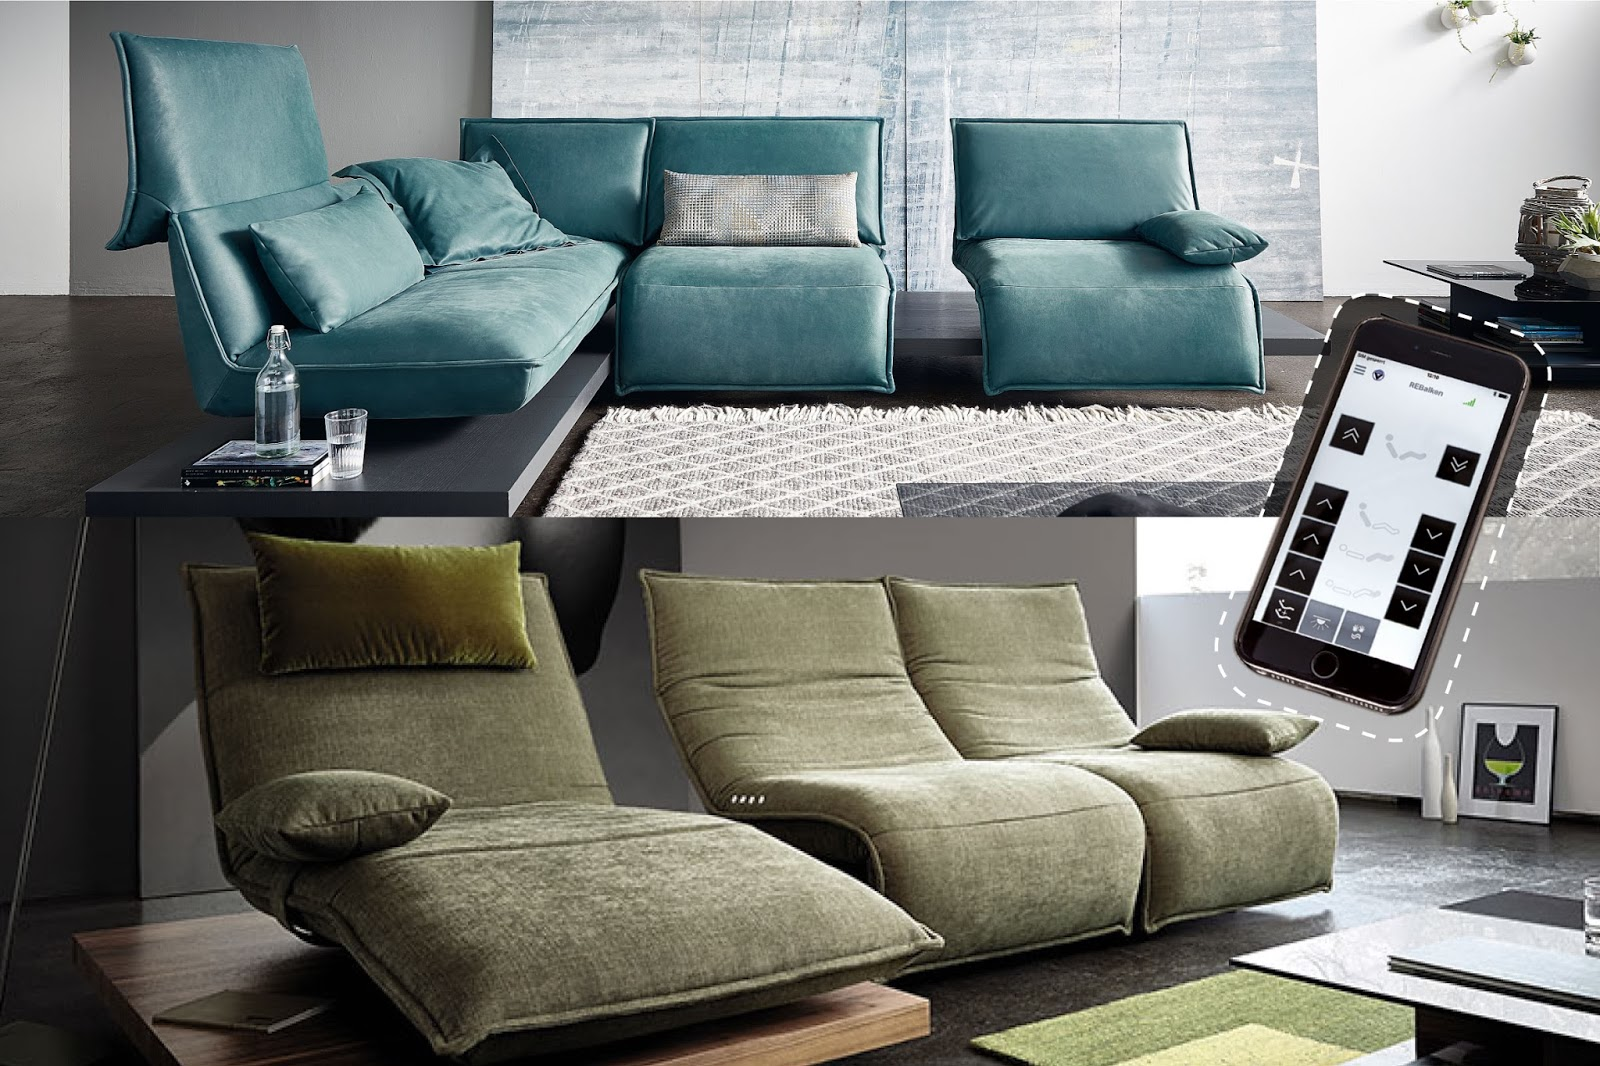 Blogs | Latest Furniture Trends | Simply Sofas | Bengaluru, Kochi ...